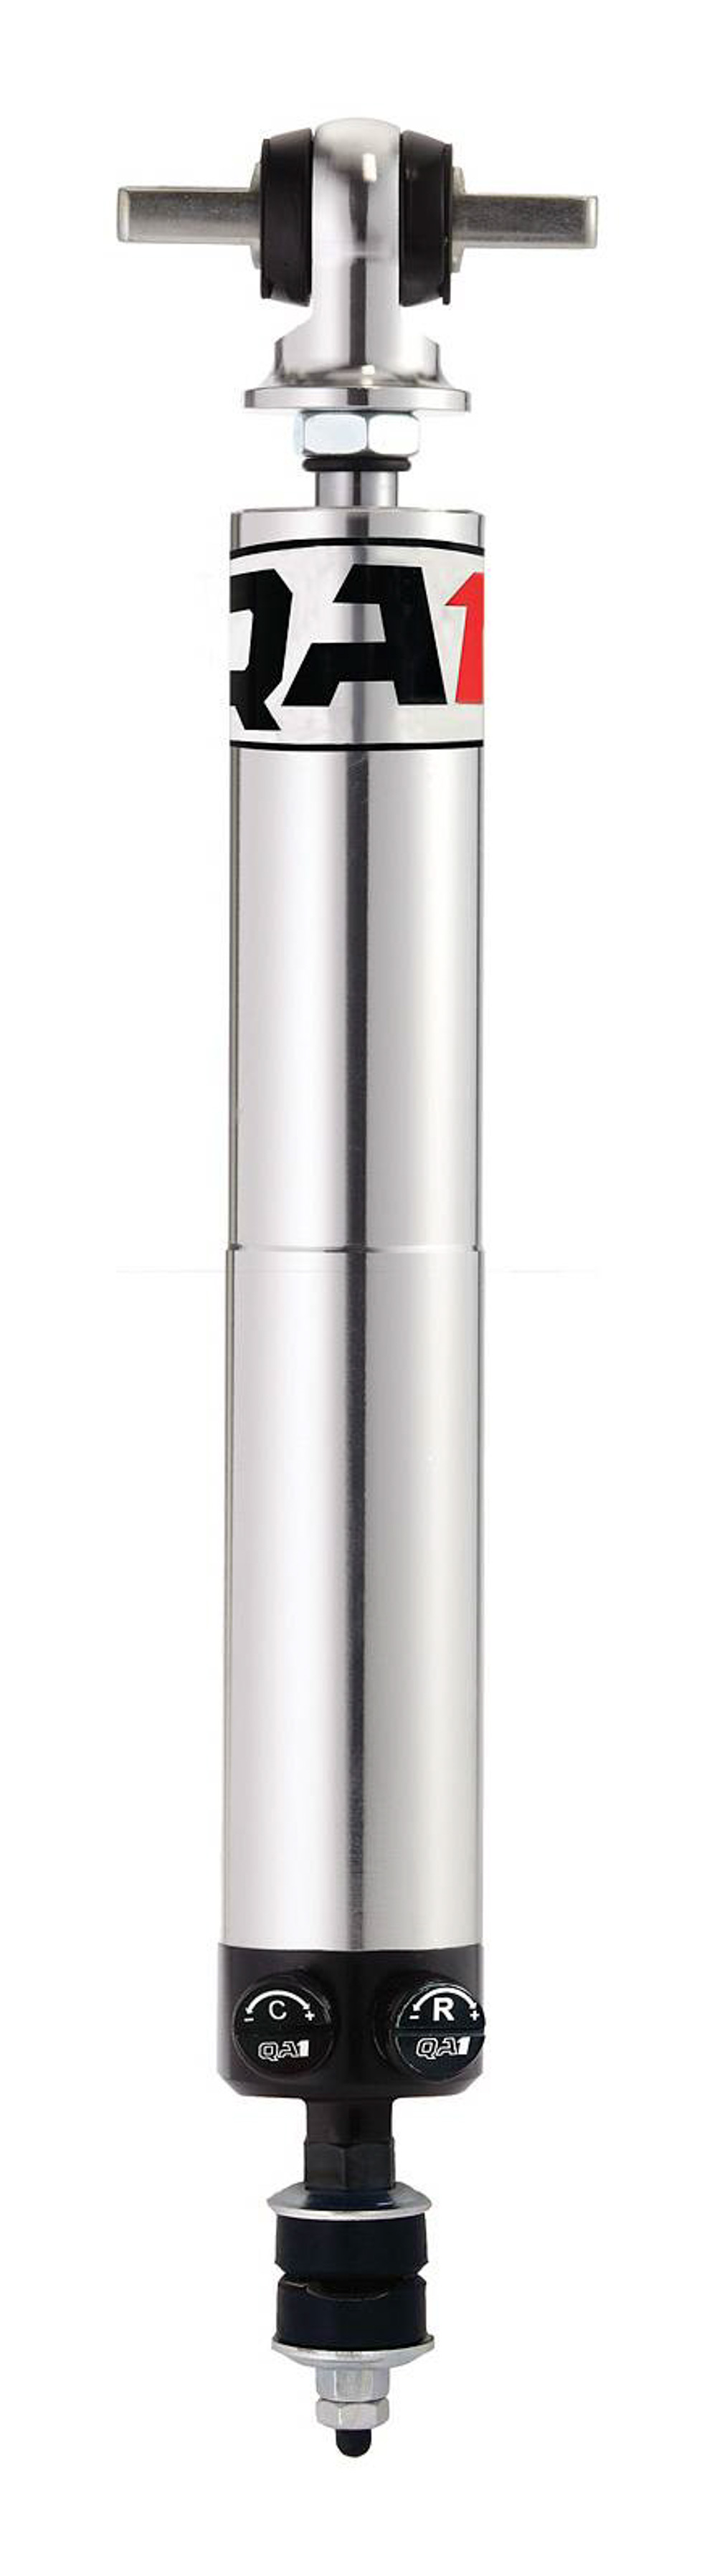 QA1 TD702 Shock, Stocker Star, Twintube, Double Adjustable, 13.13 in Compressed / 19.63 in Extended, Aluminum, Natural, Each